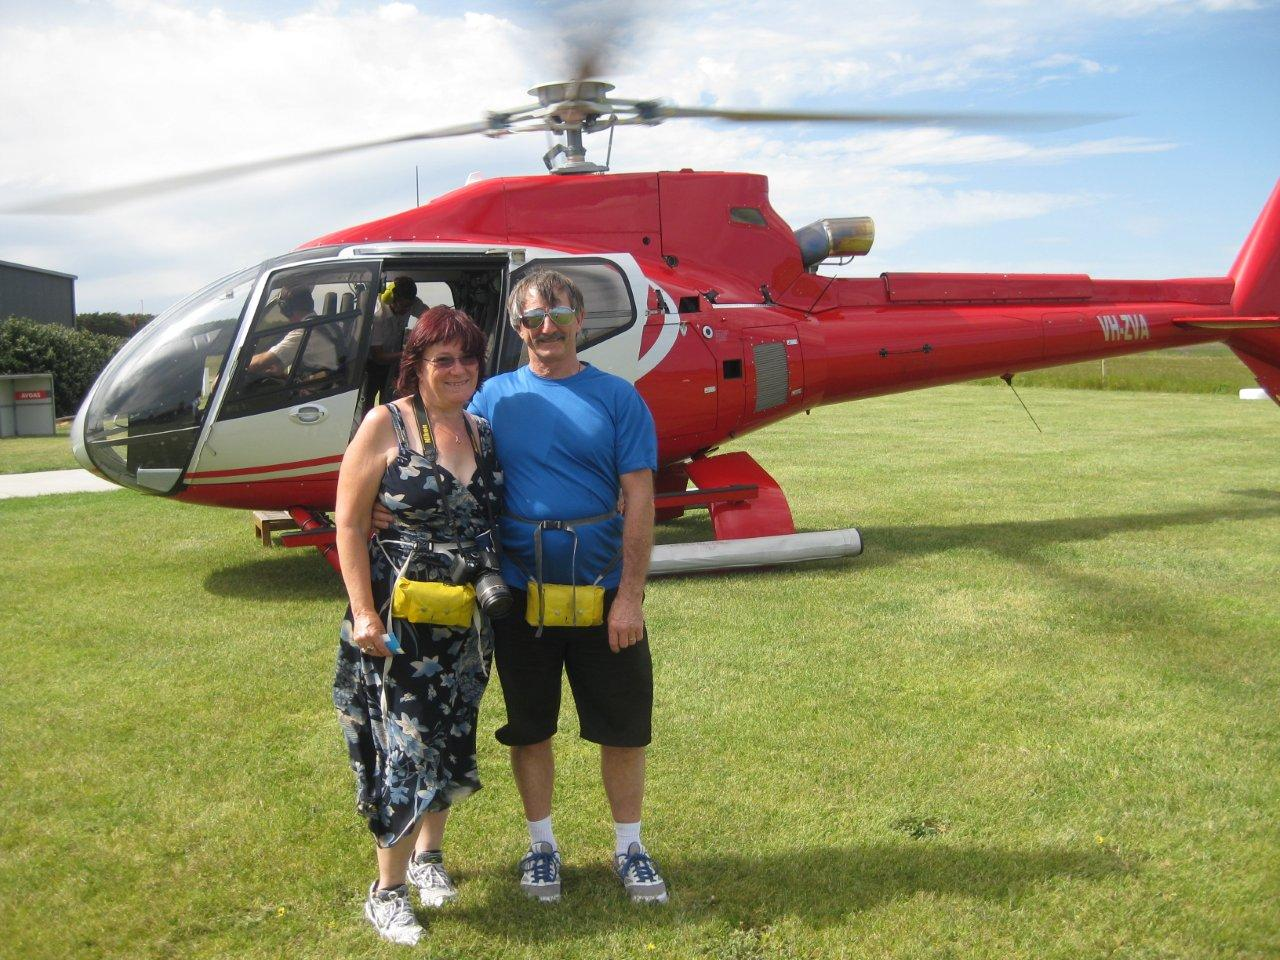 David & May after the Helicopter Tour